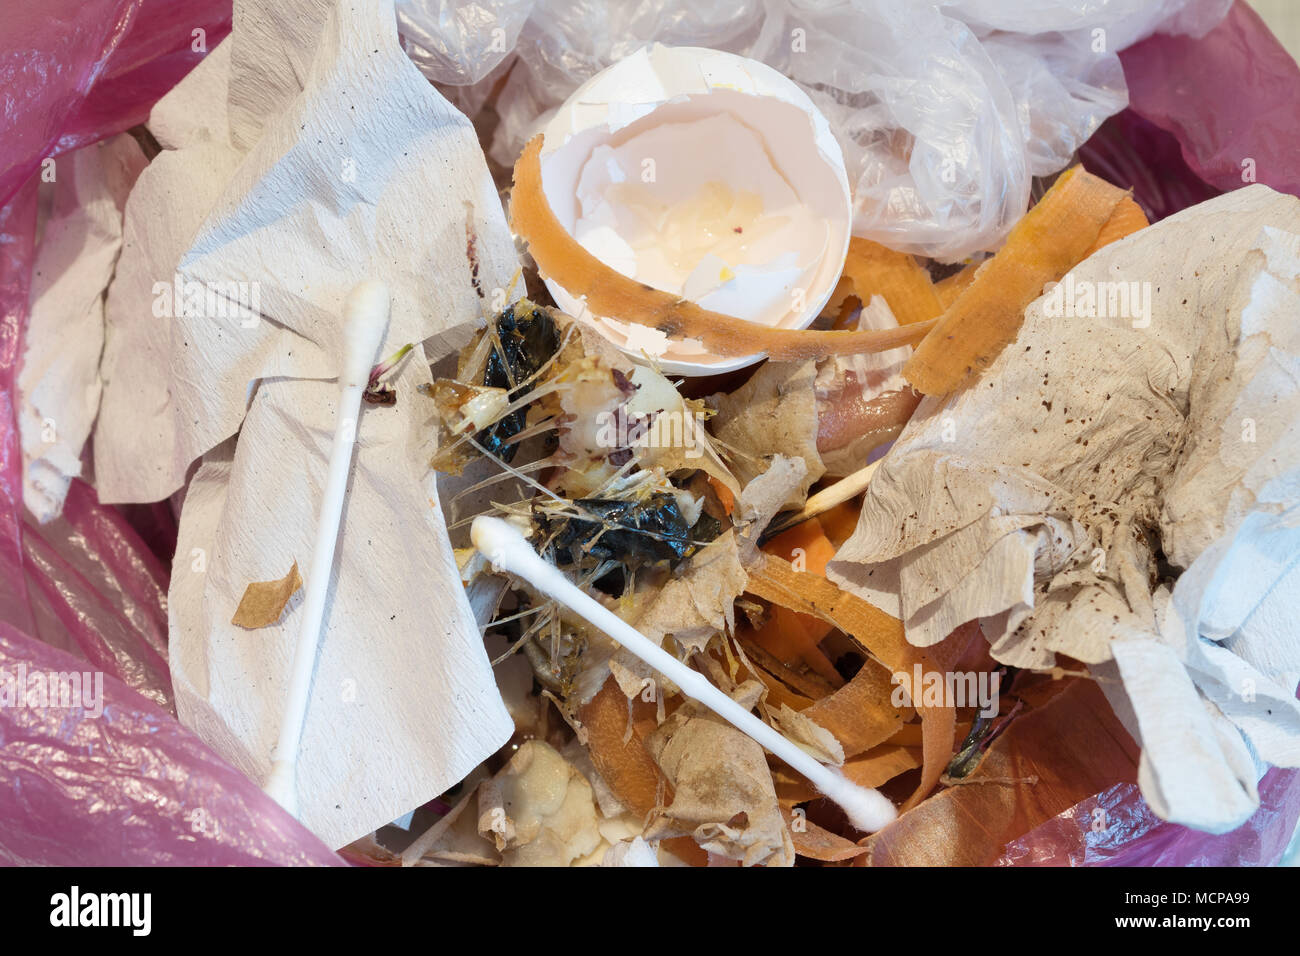 Remains of food in trash can. Organic waste in trash can. - Stock Image